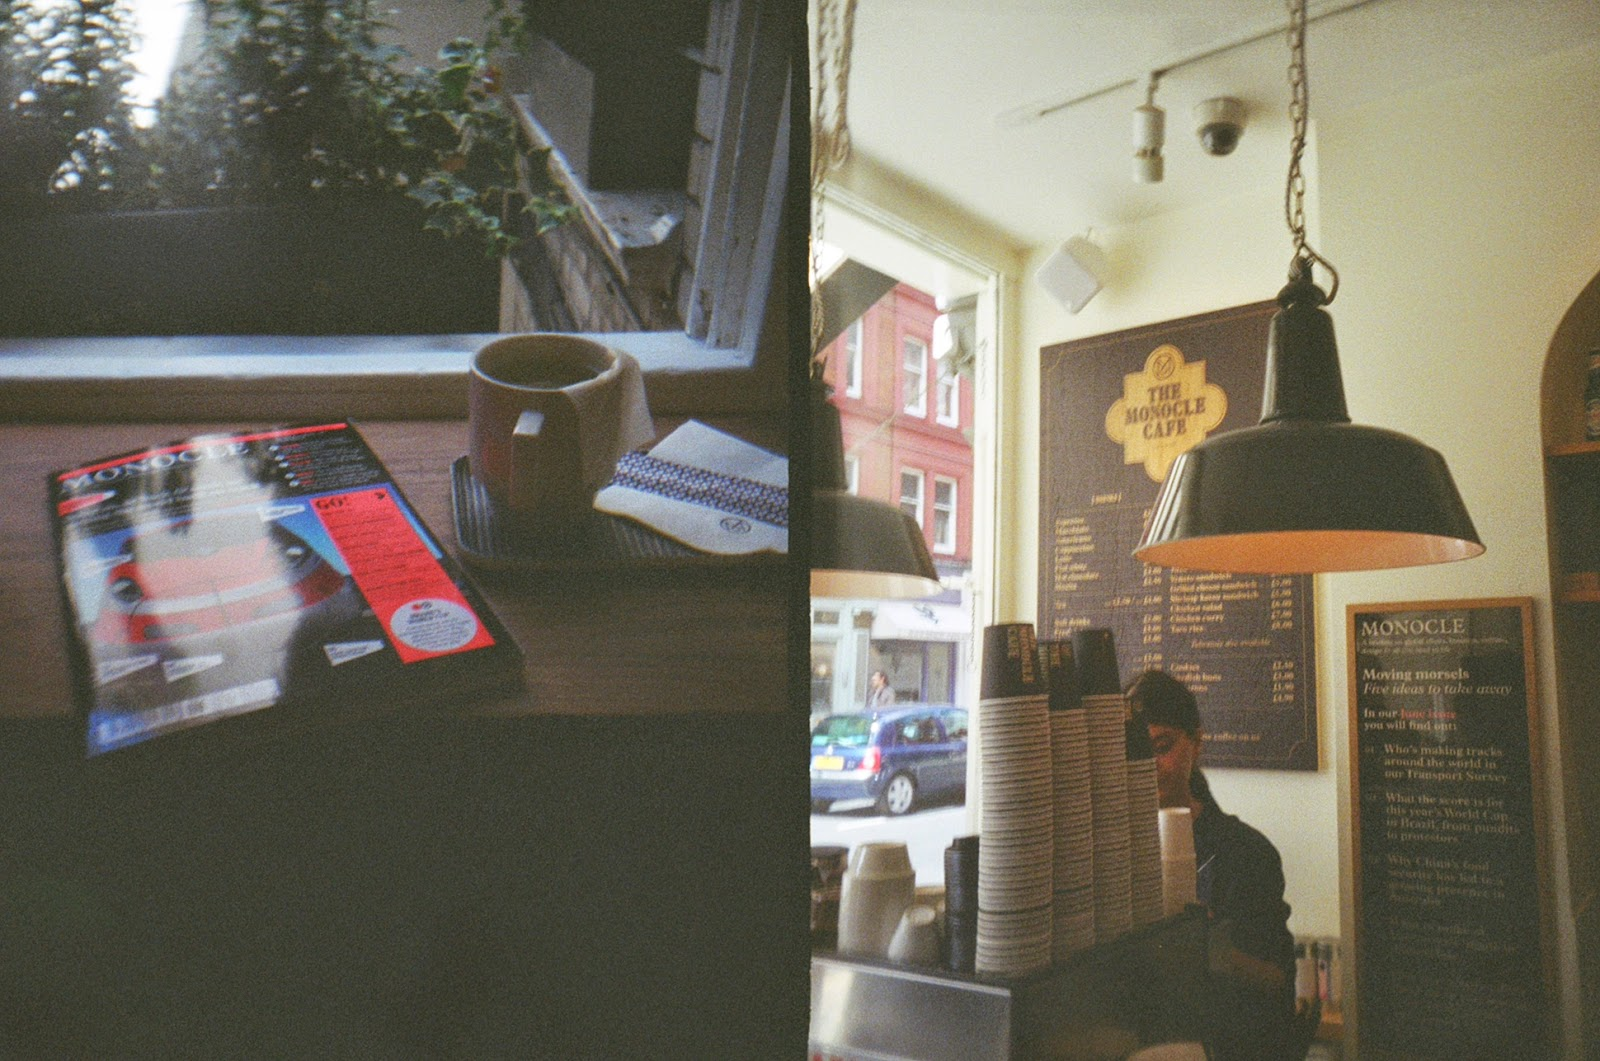 Superheadz Golden Half Camera London Monocle Cafe